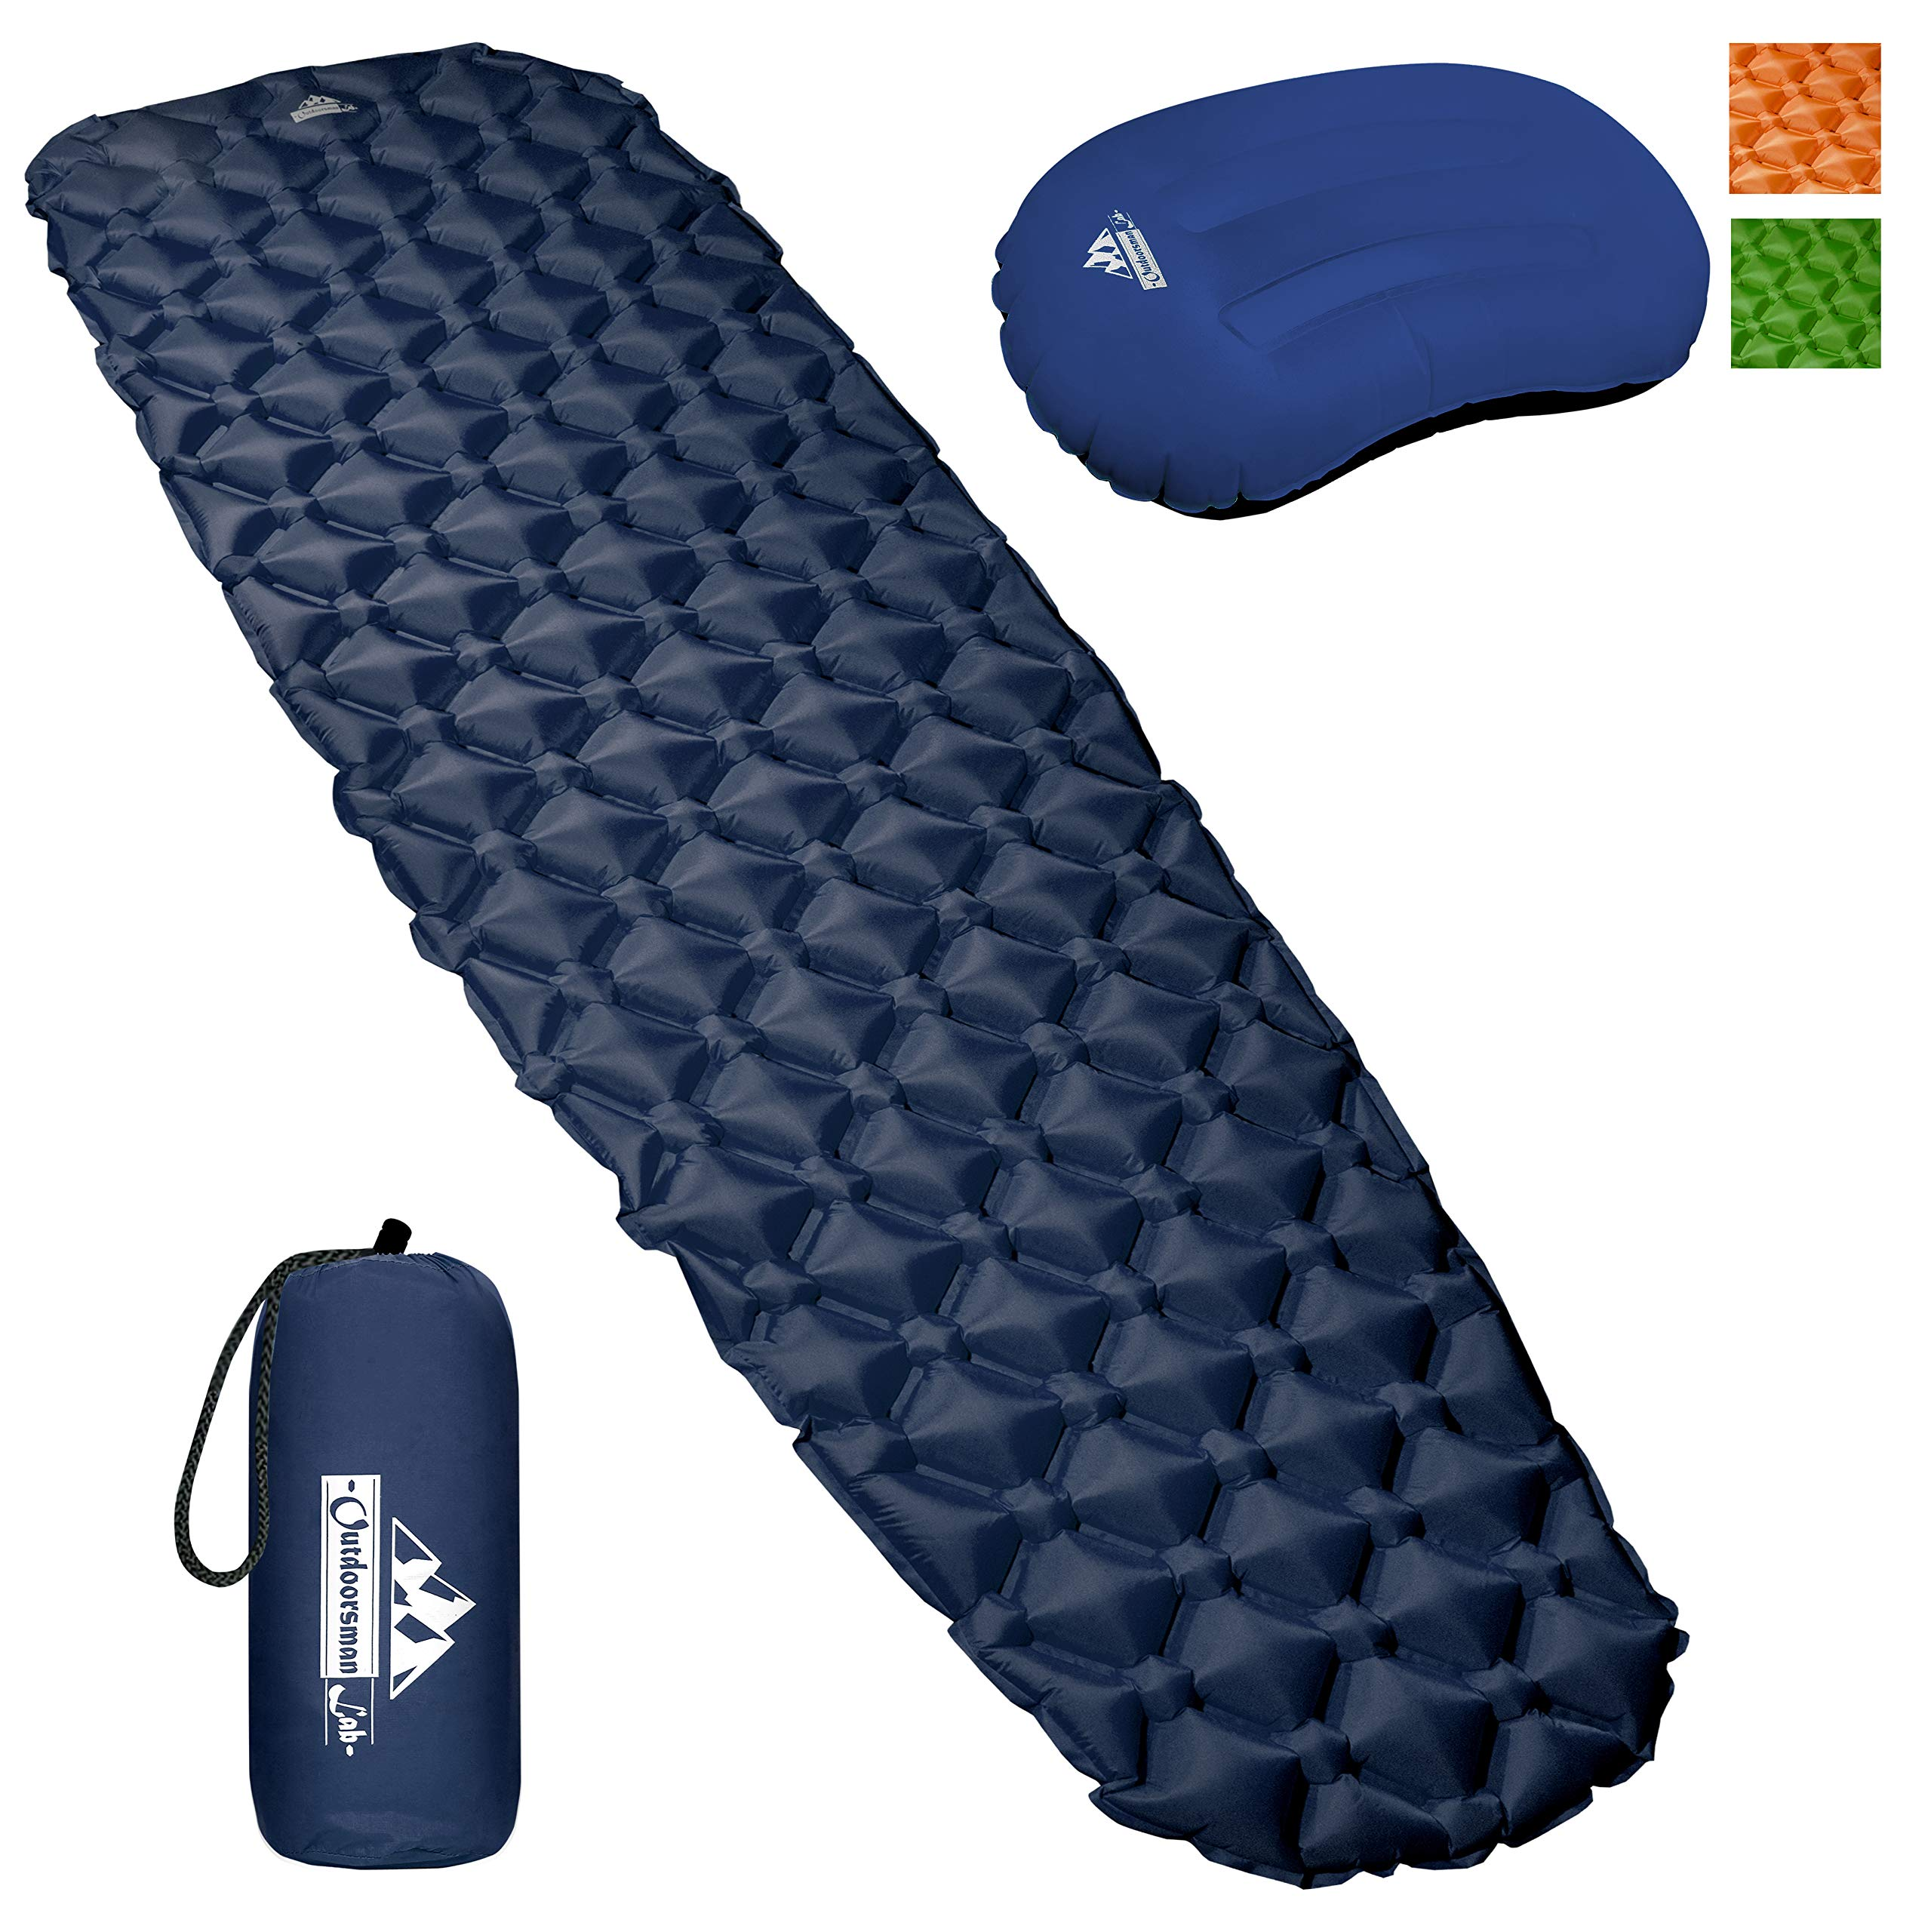 Outdoorsman Lab Camping Sleeping Pad | Ultralight Inflatable Camping Mat Pad for Backpacking & Hiking | Durable Insulated Sleeping Mat, Compact Carrying Bag and Repair Kit (Blue Bundle with Pillow) by Outdoorsman Lab